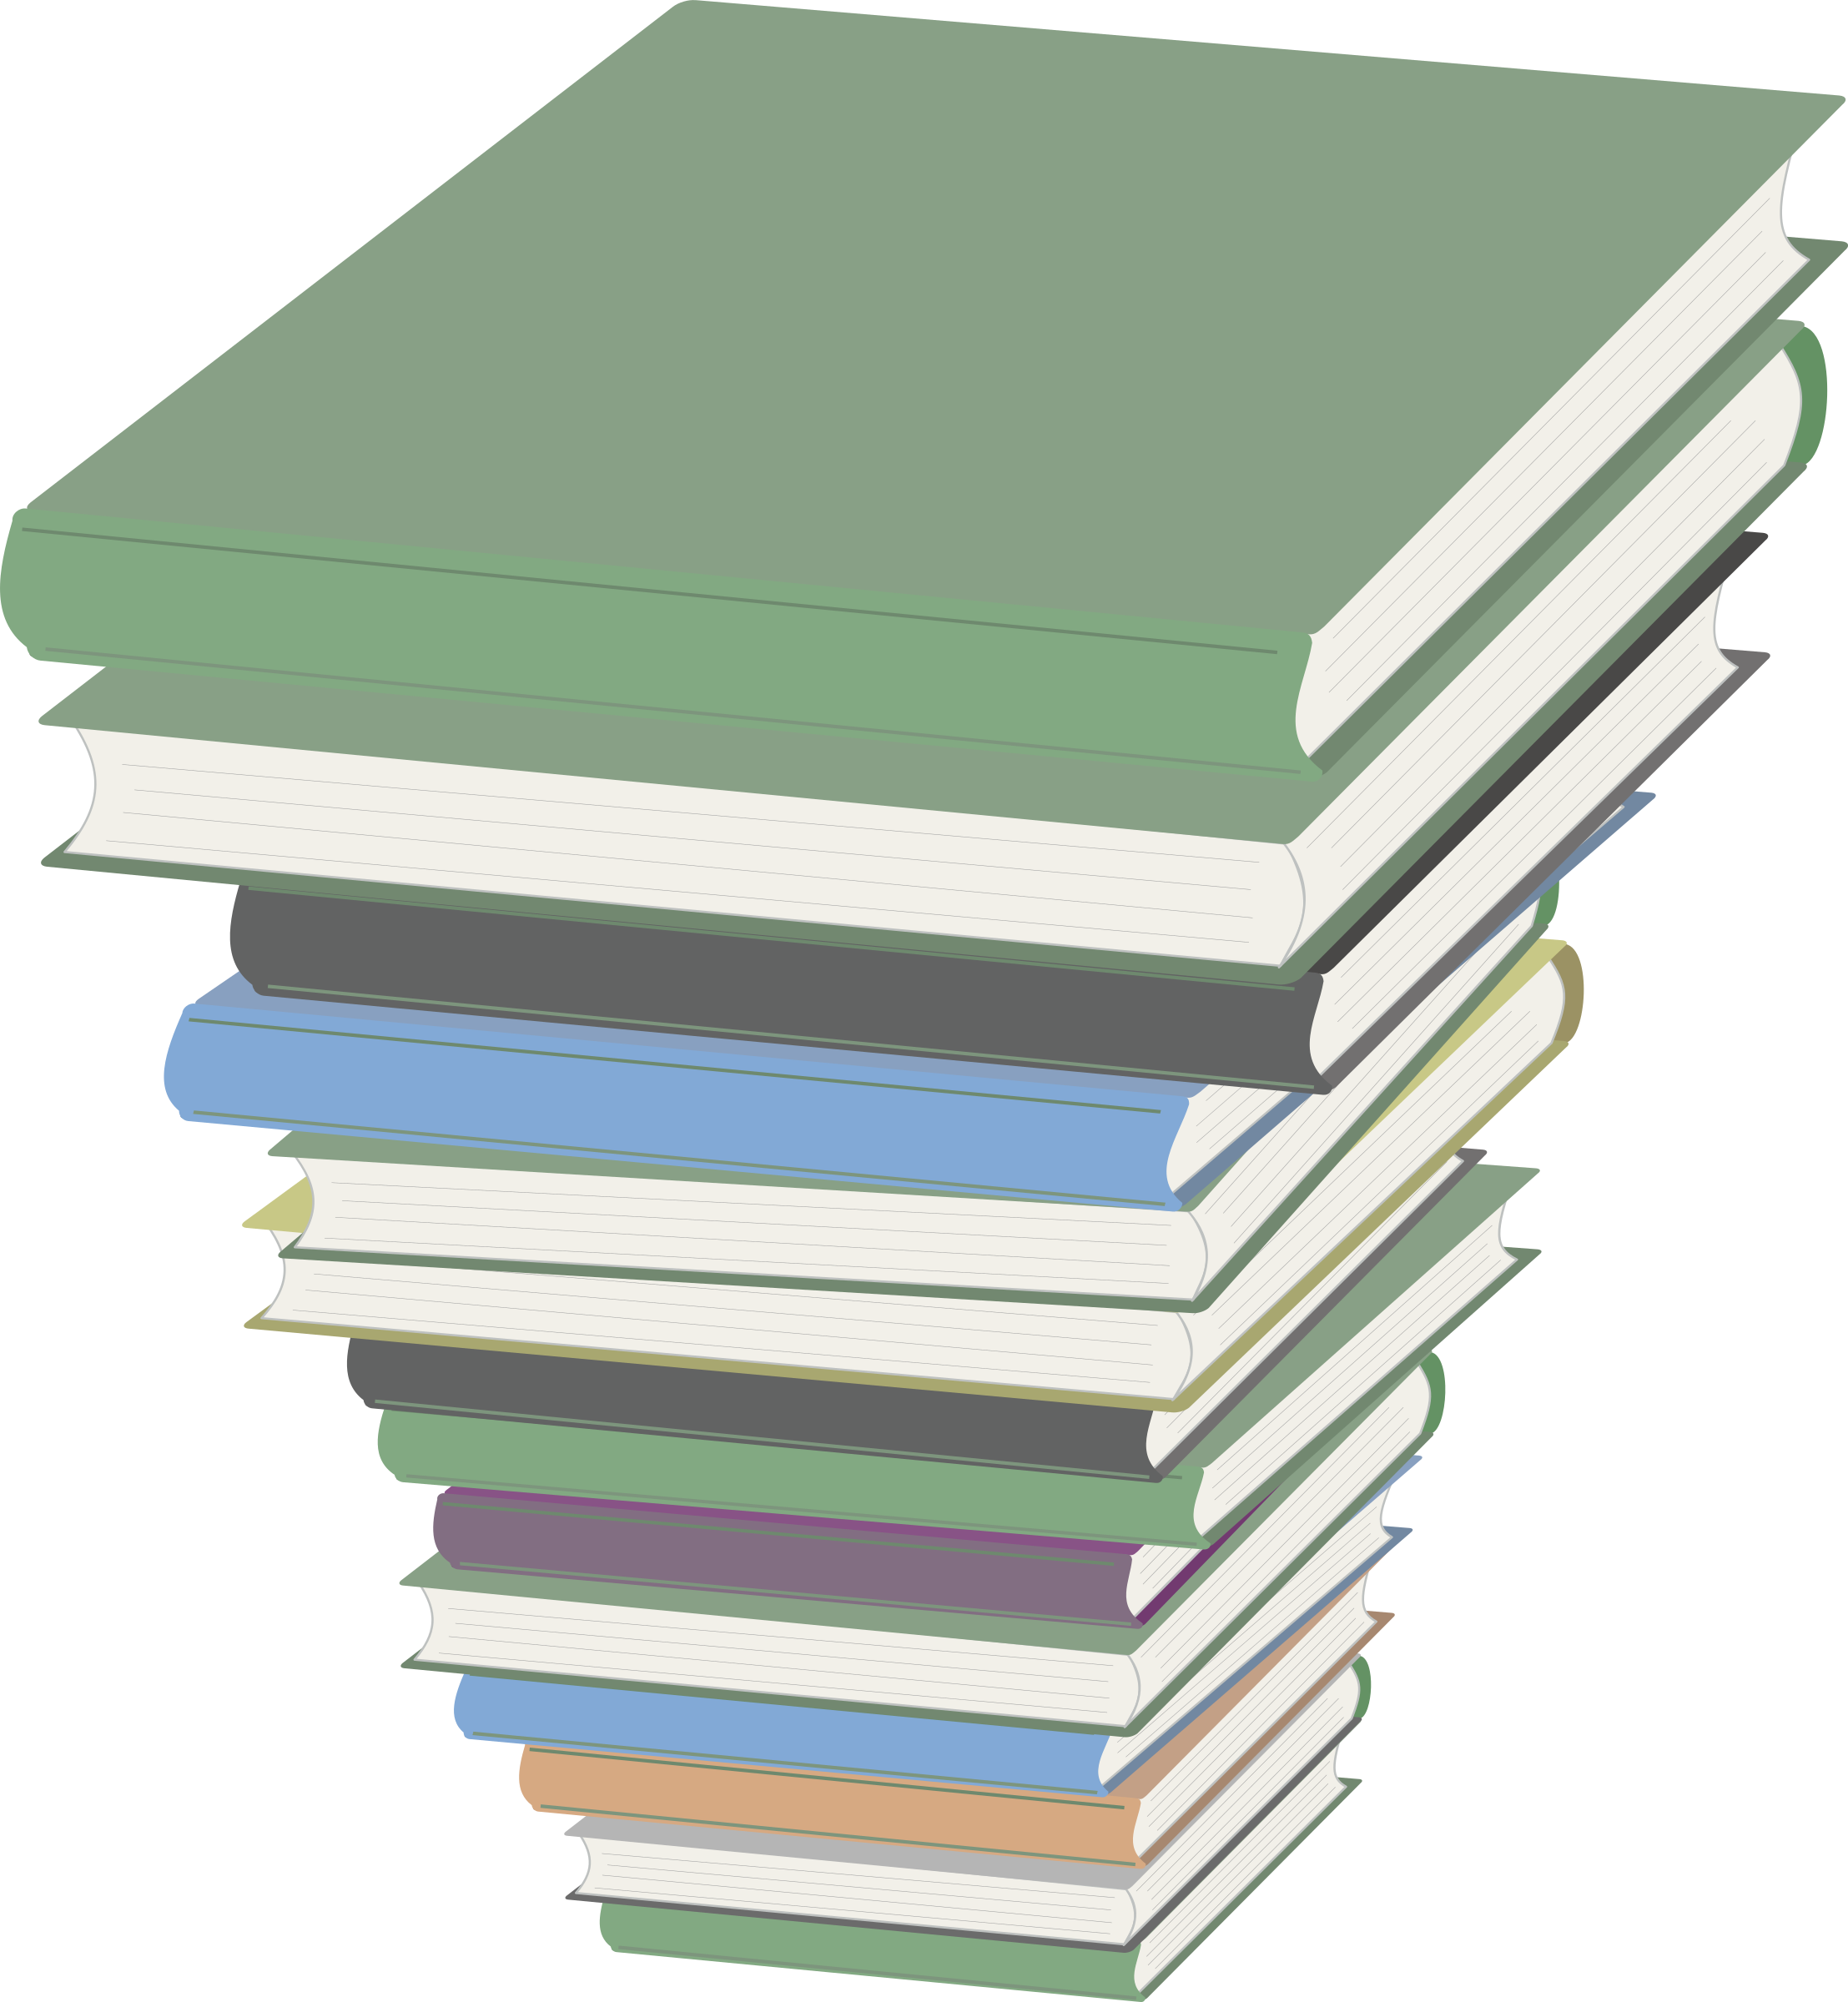 Textbook clipart transparent background. Pile of books big